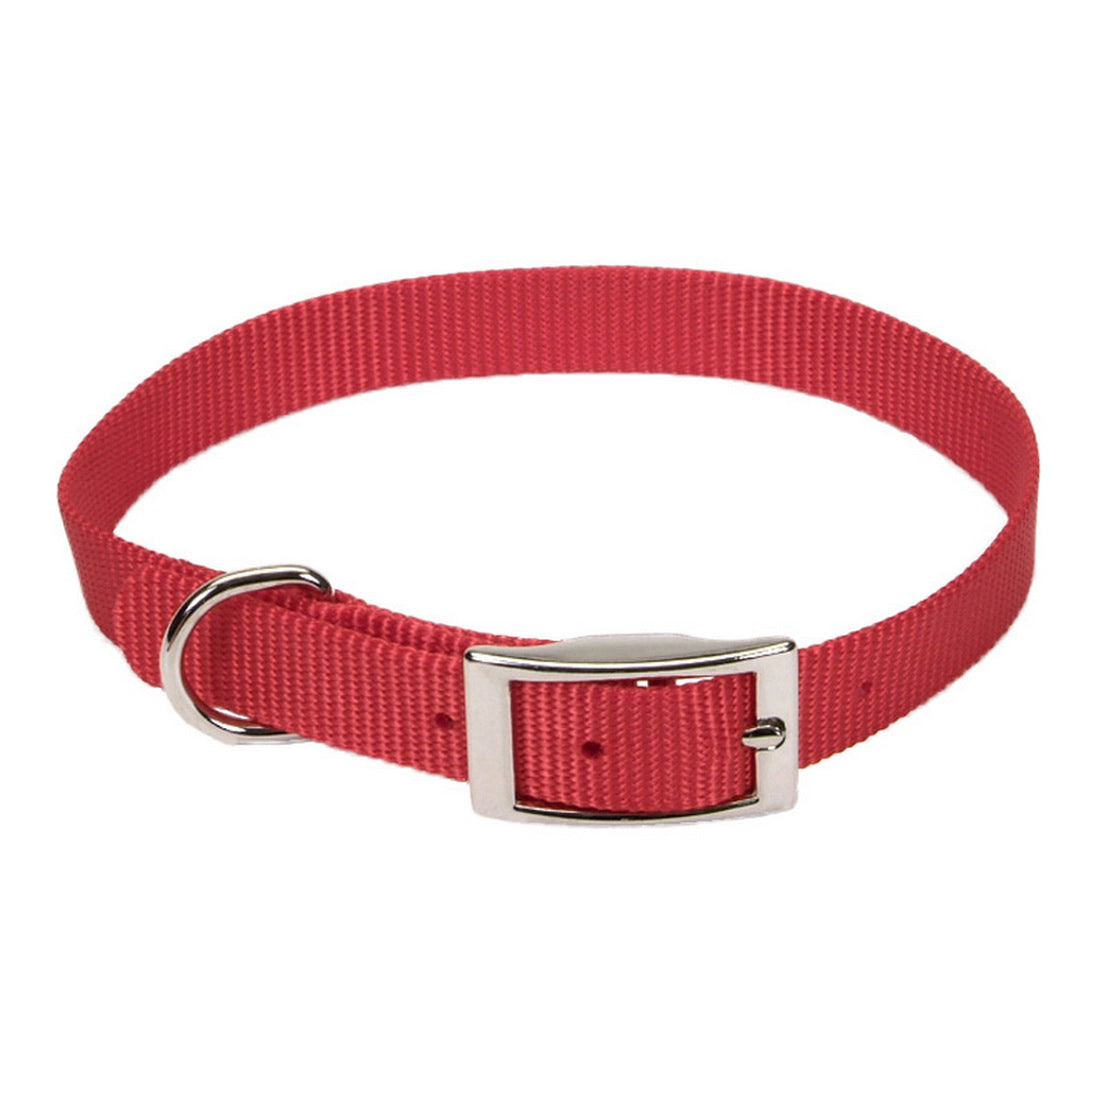 "Coastal Nylon Collar 16"" - 5/8"" Red"